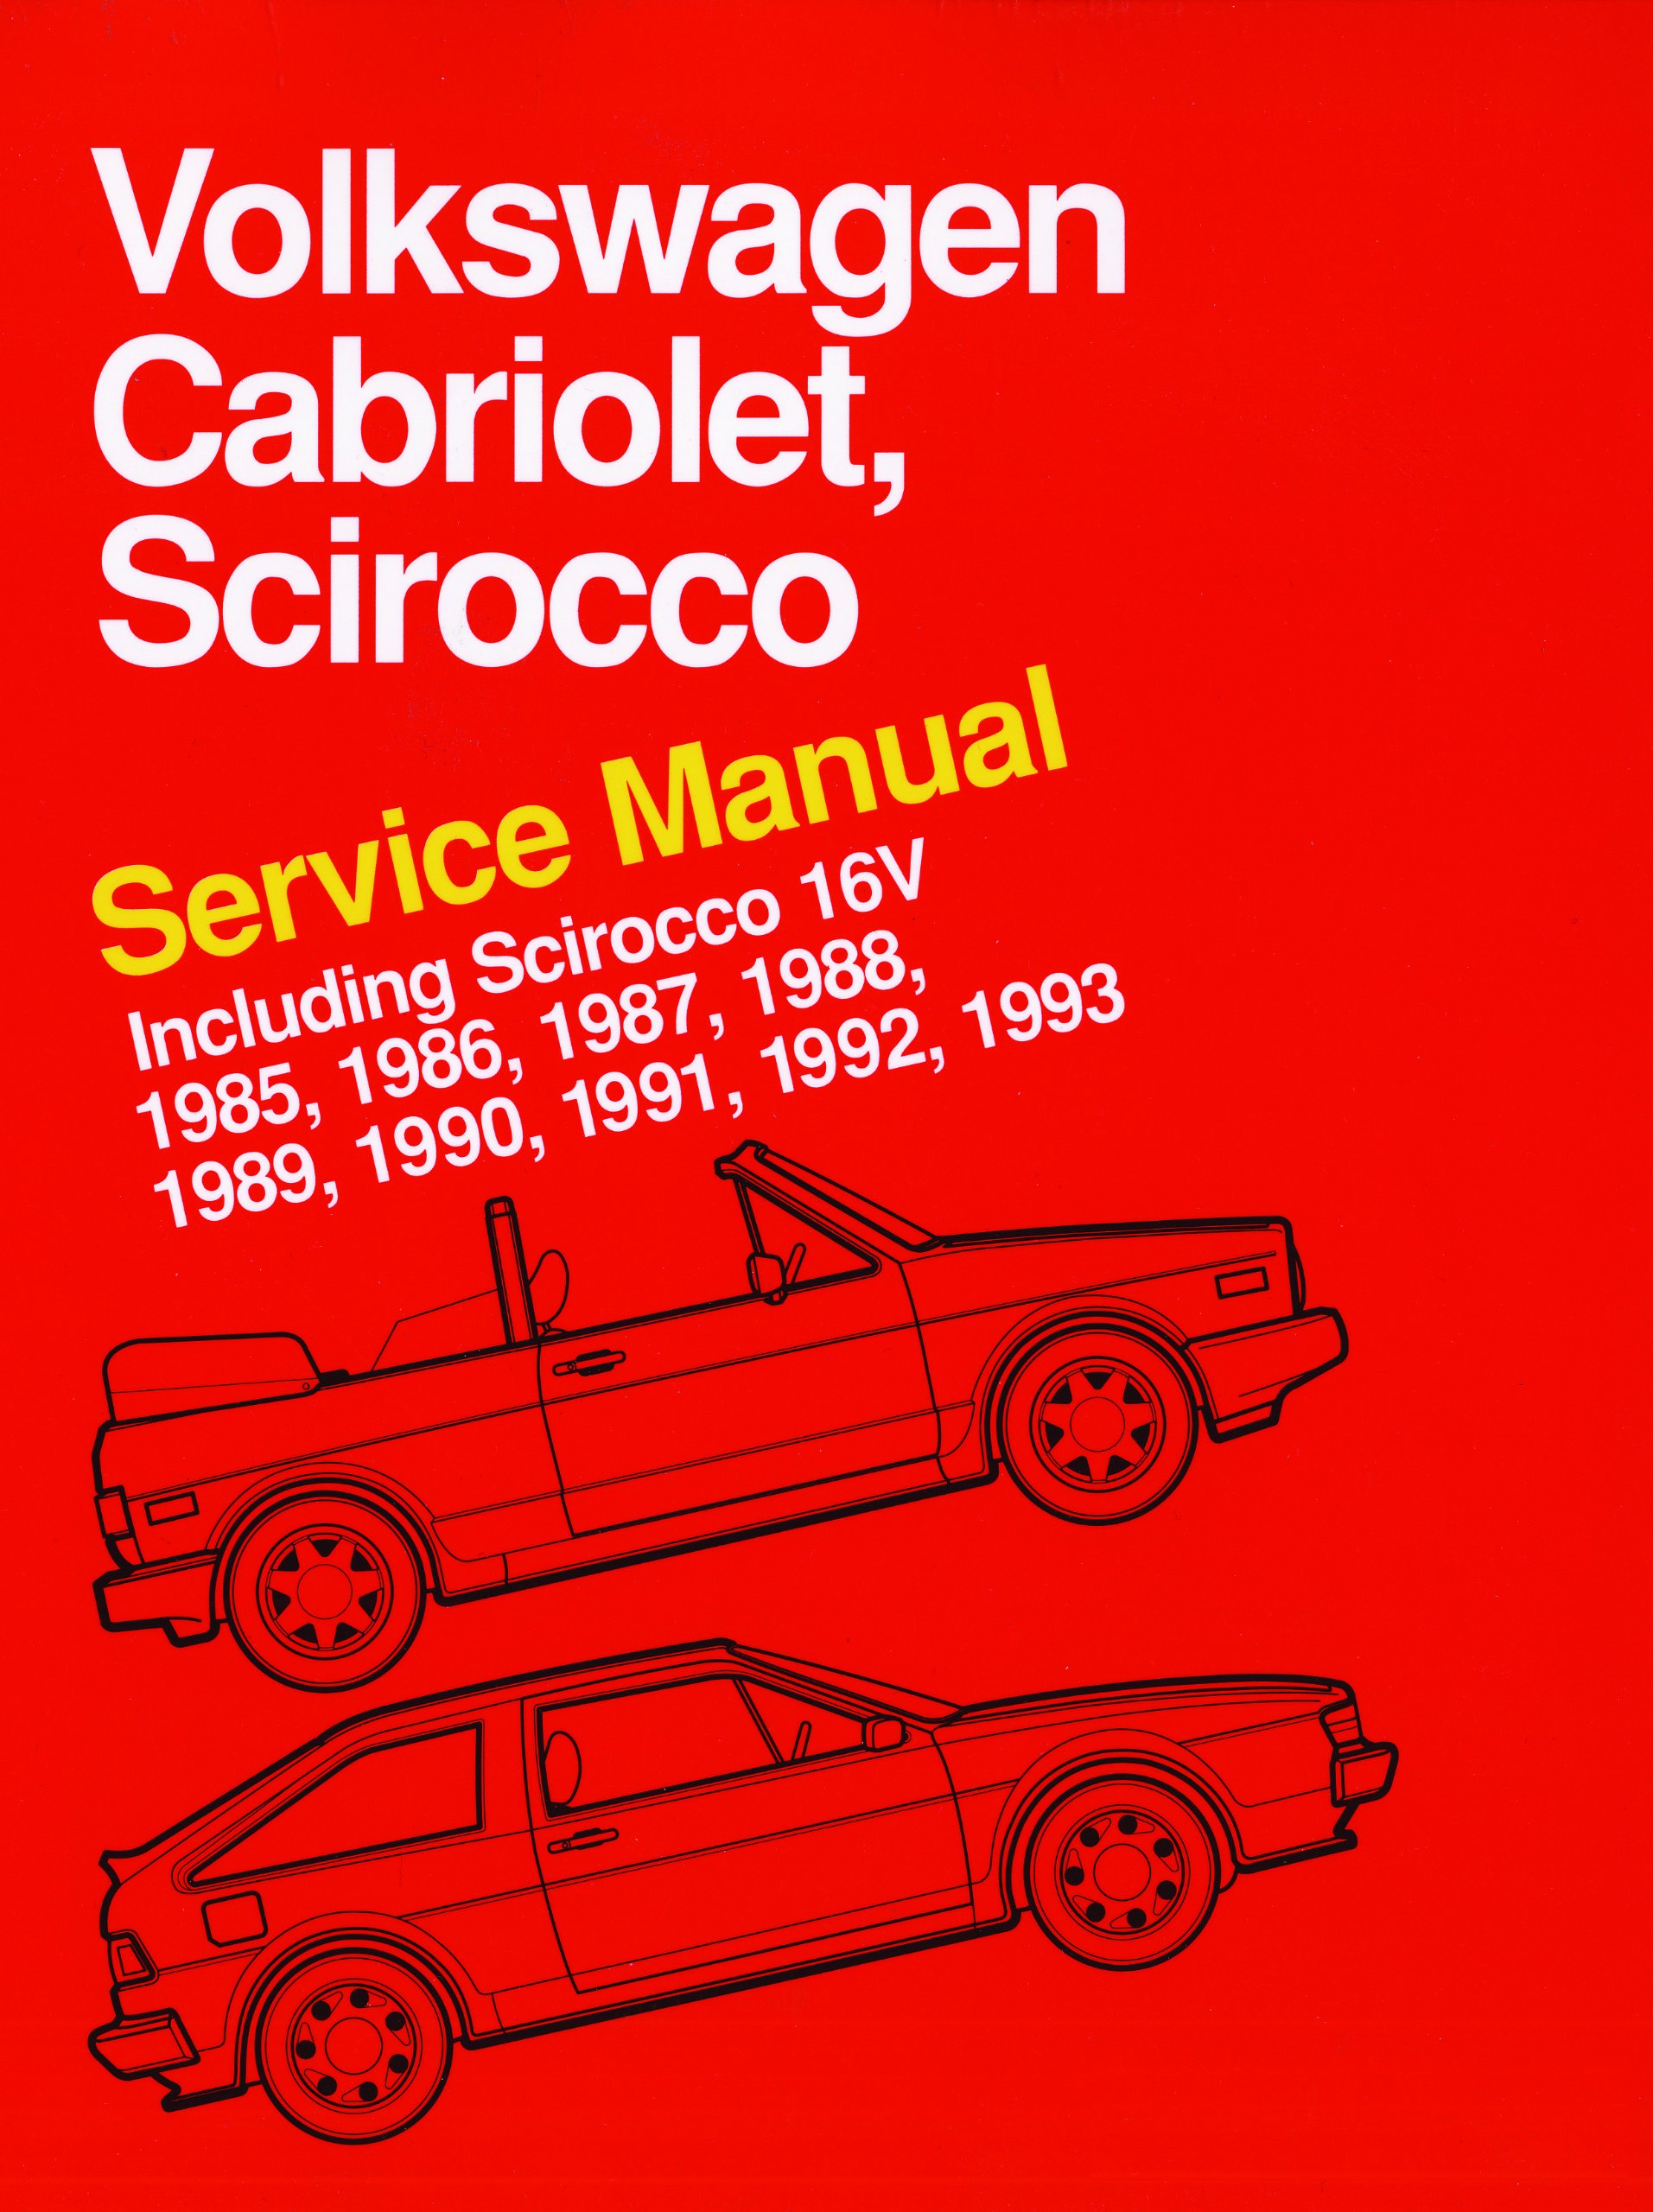 volkswagen cabriolet scirocco service manual 1985 1986 1987 rh amazon co uk Volvo Cars 1986 Volkswagen Cabriolet Engine